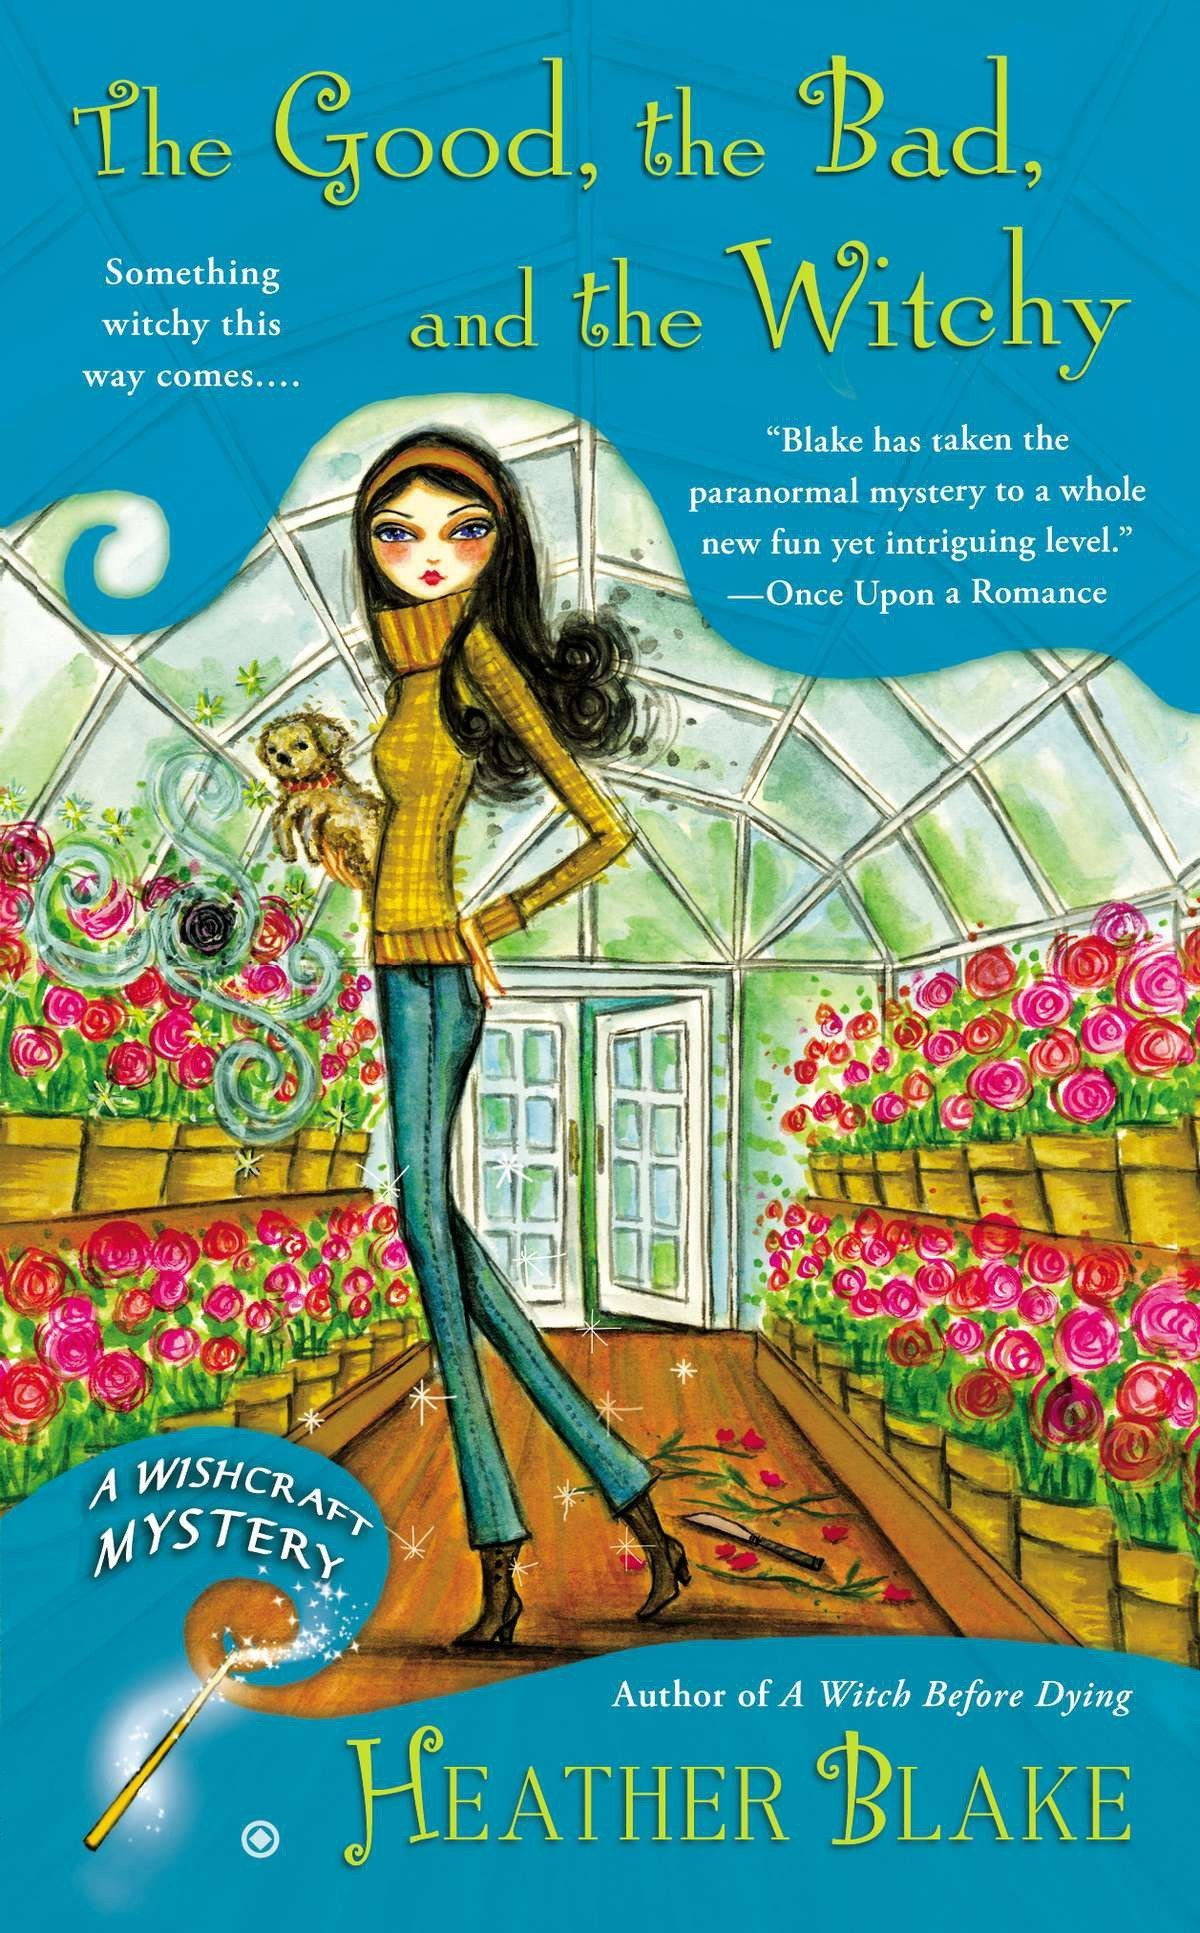 Download The Good, the Bad, and the Witchy: A Wishcraft Mystery PDF